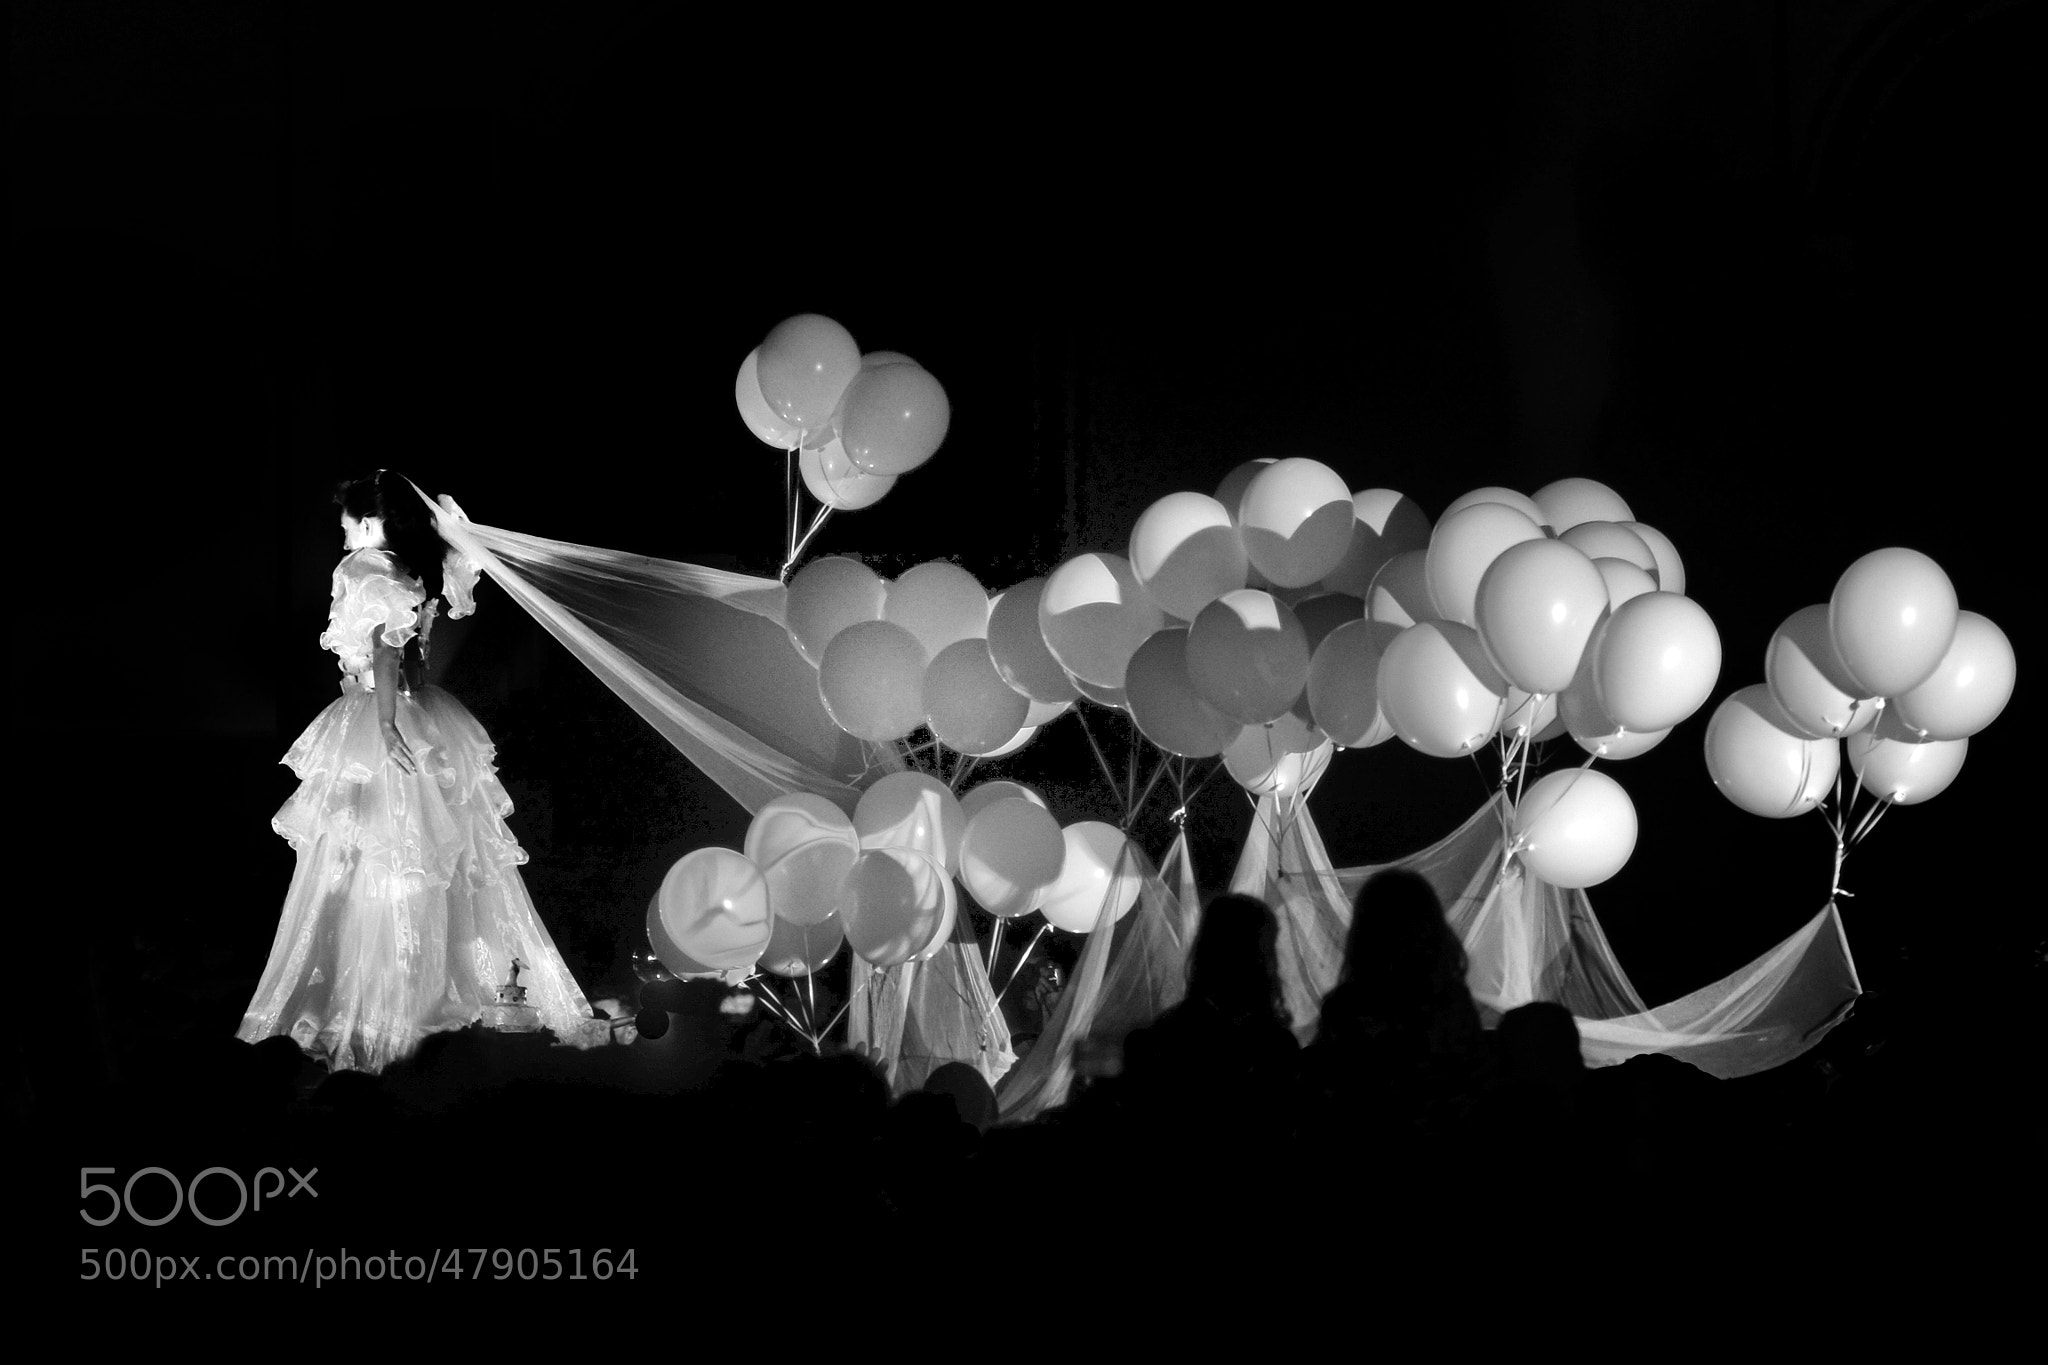 Photograph Angel In The Dark... by Ionescu Dragos on 500px